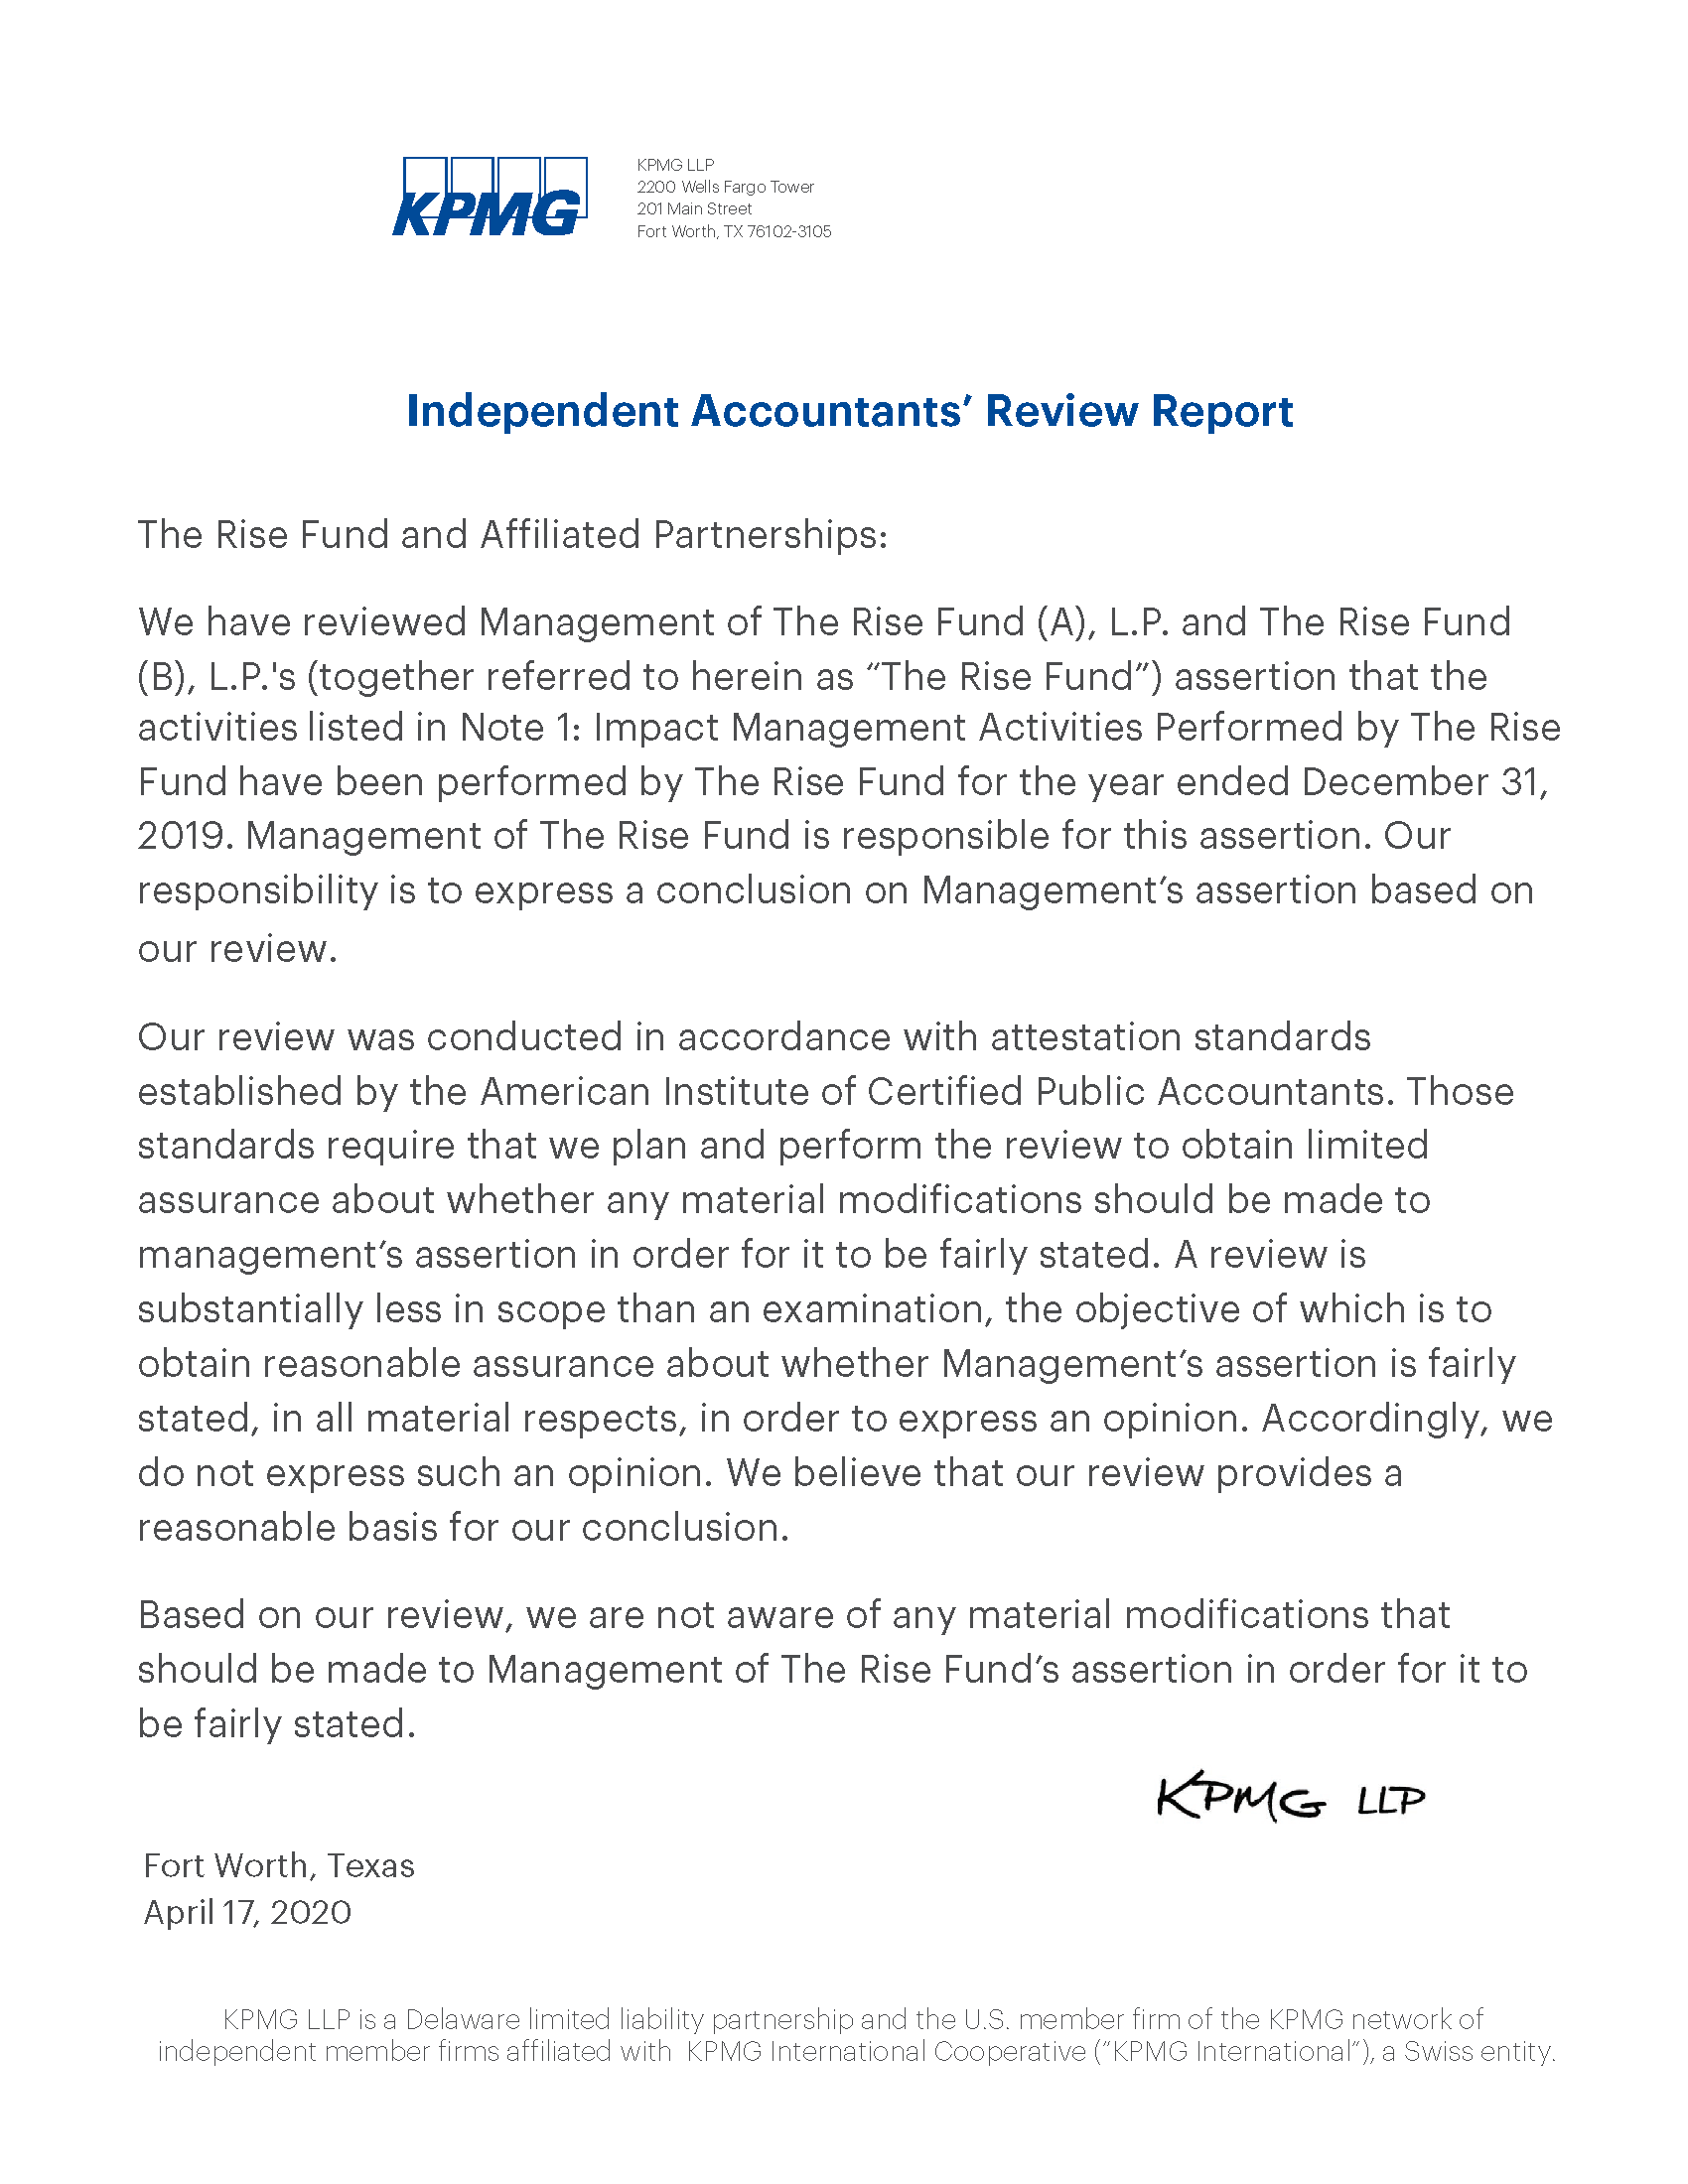 Image of text - full text of KPMG Verification Statement below image